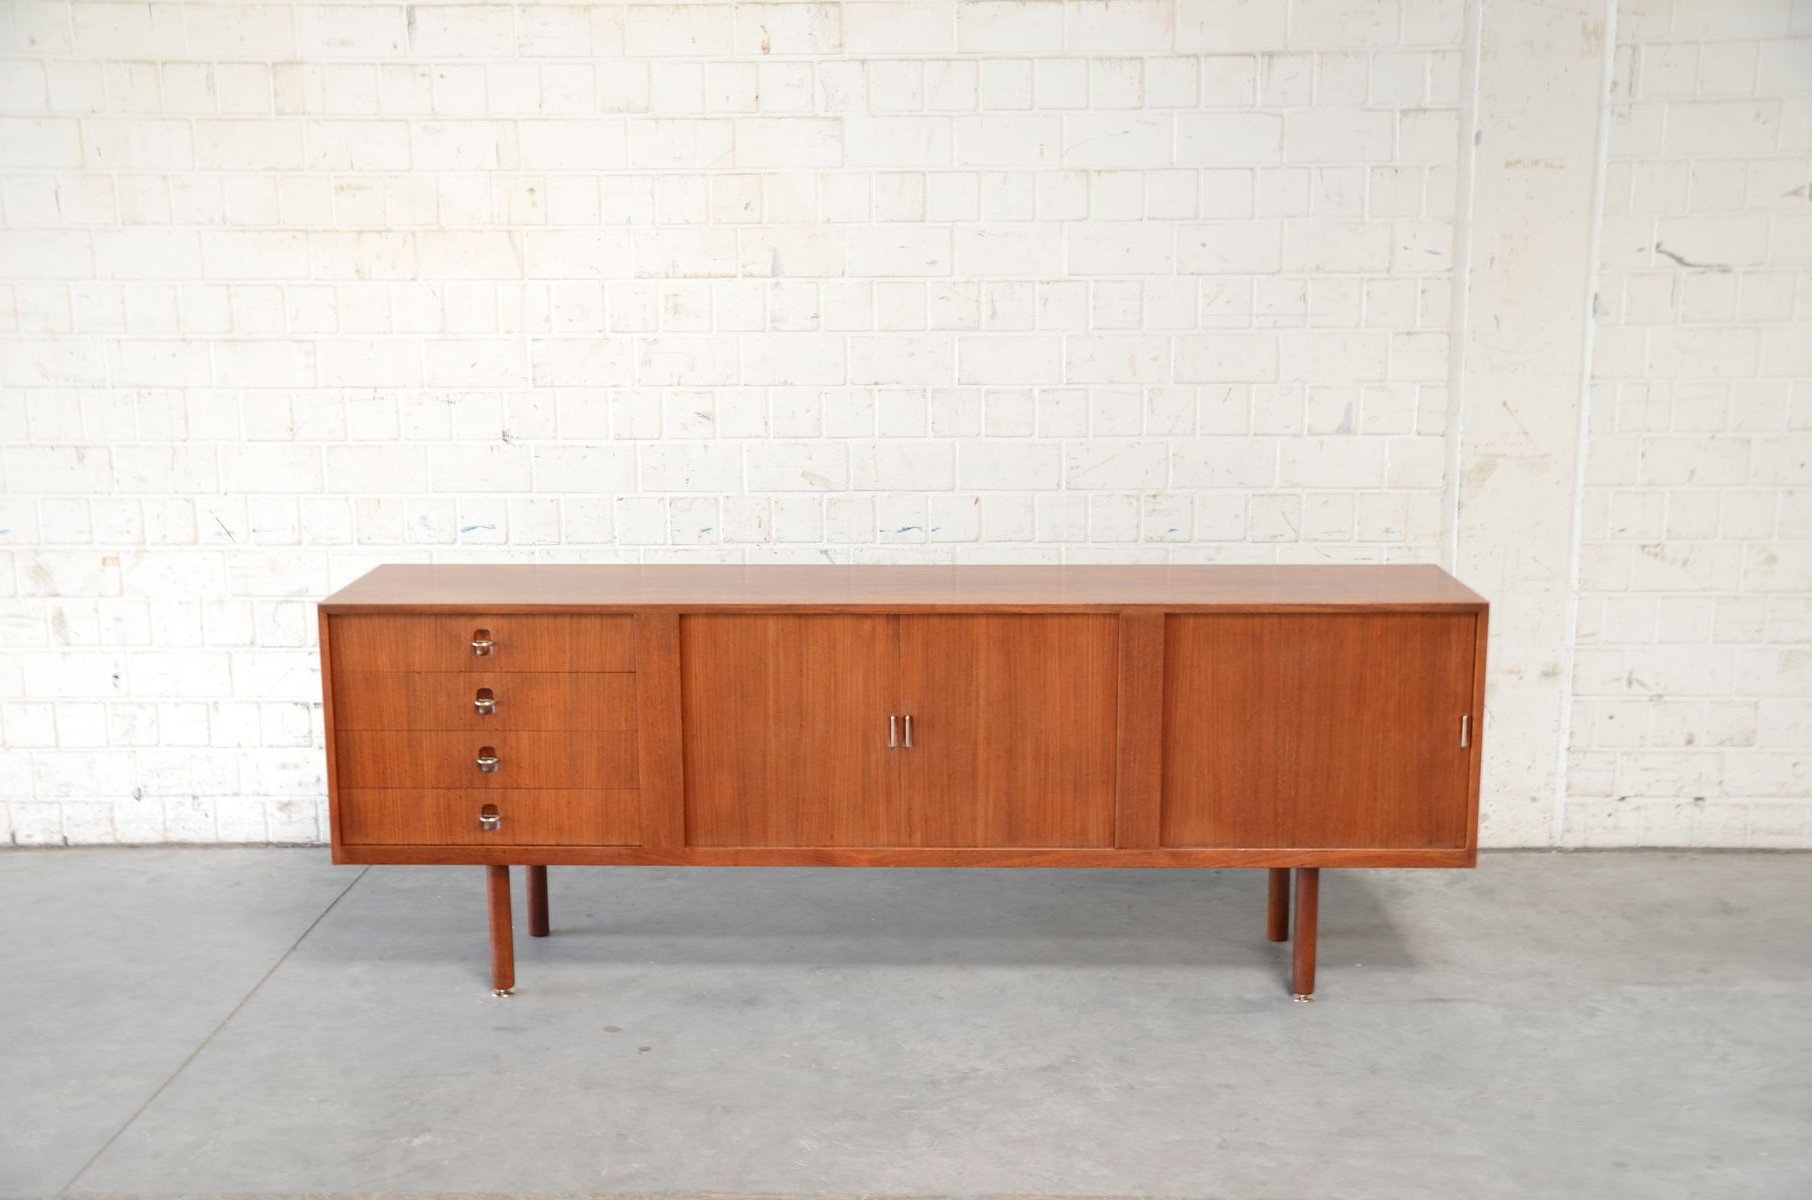 Vintage Danish Teak & Brass Sideboard With Tambour Doors For Sale At Within Favorite Aged Brass Sideboards (View 18 of 20)